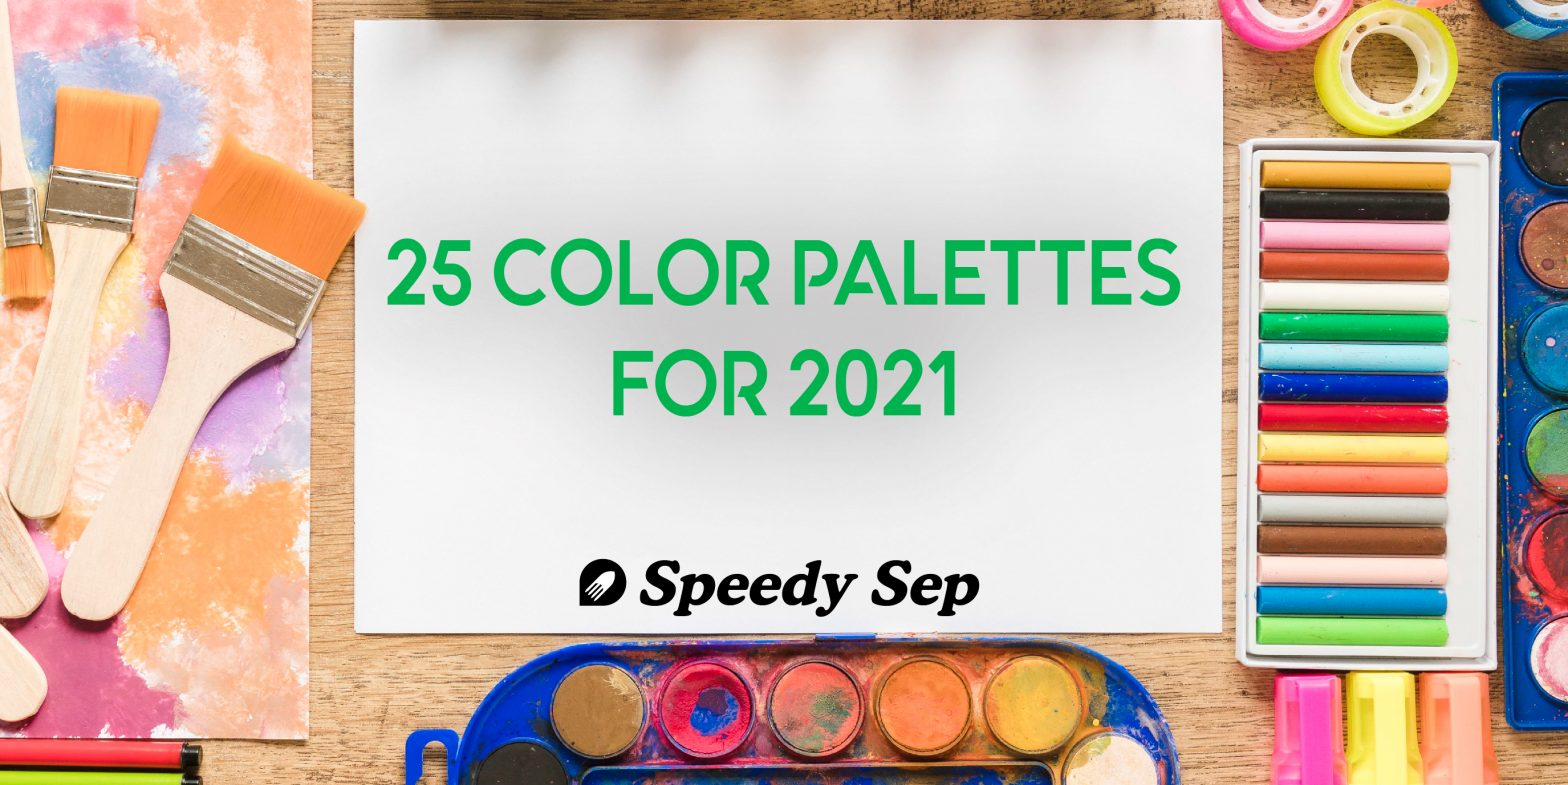 Top 25 Color Palettes for 2021